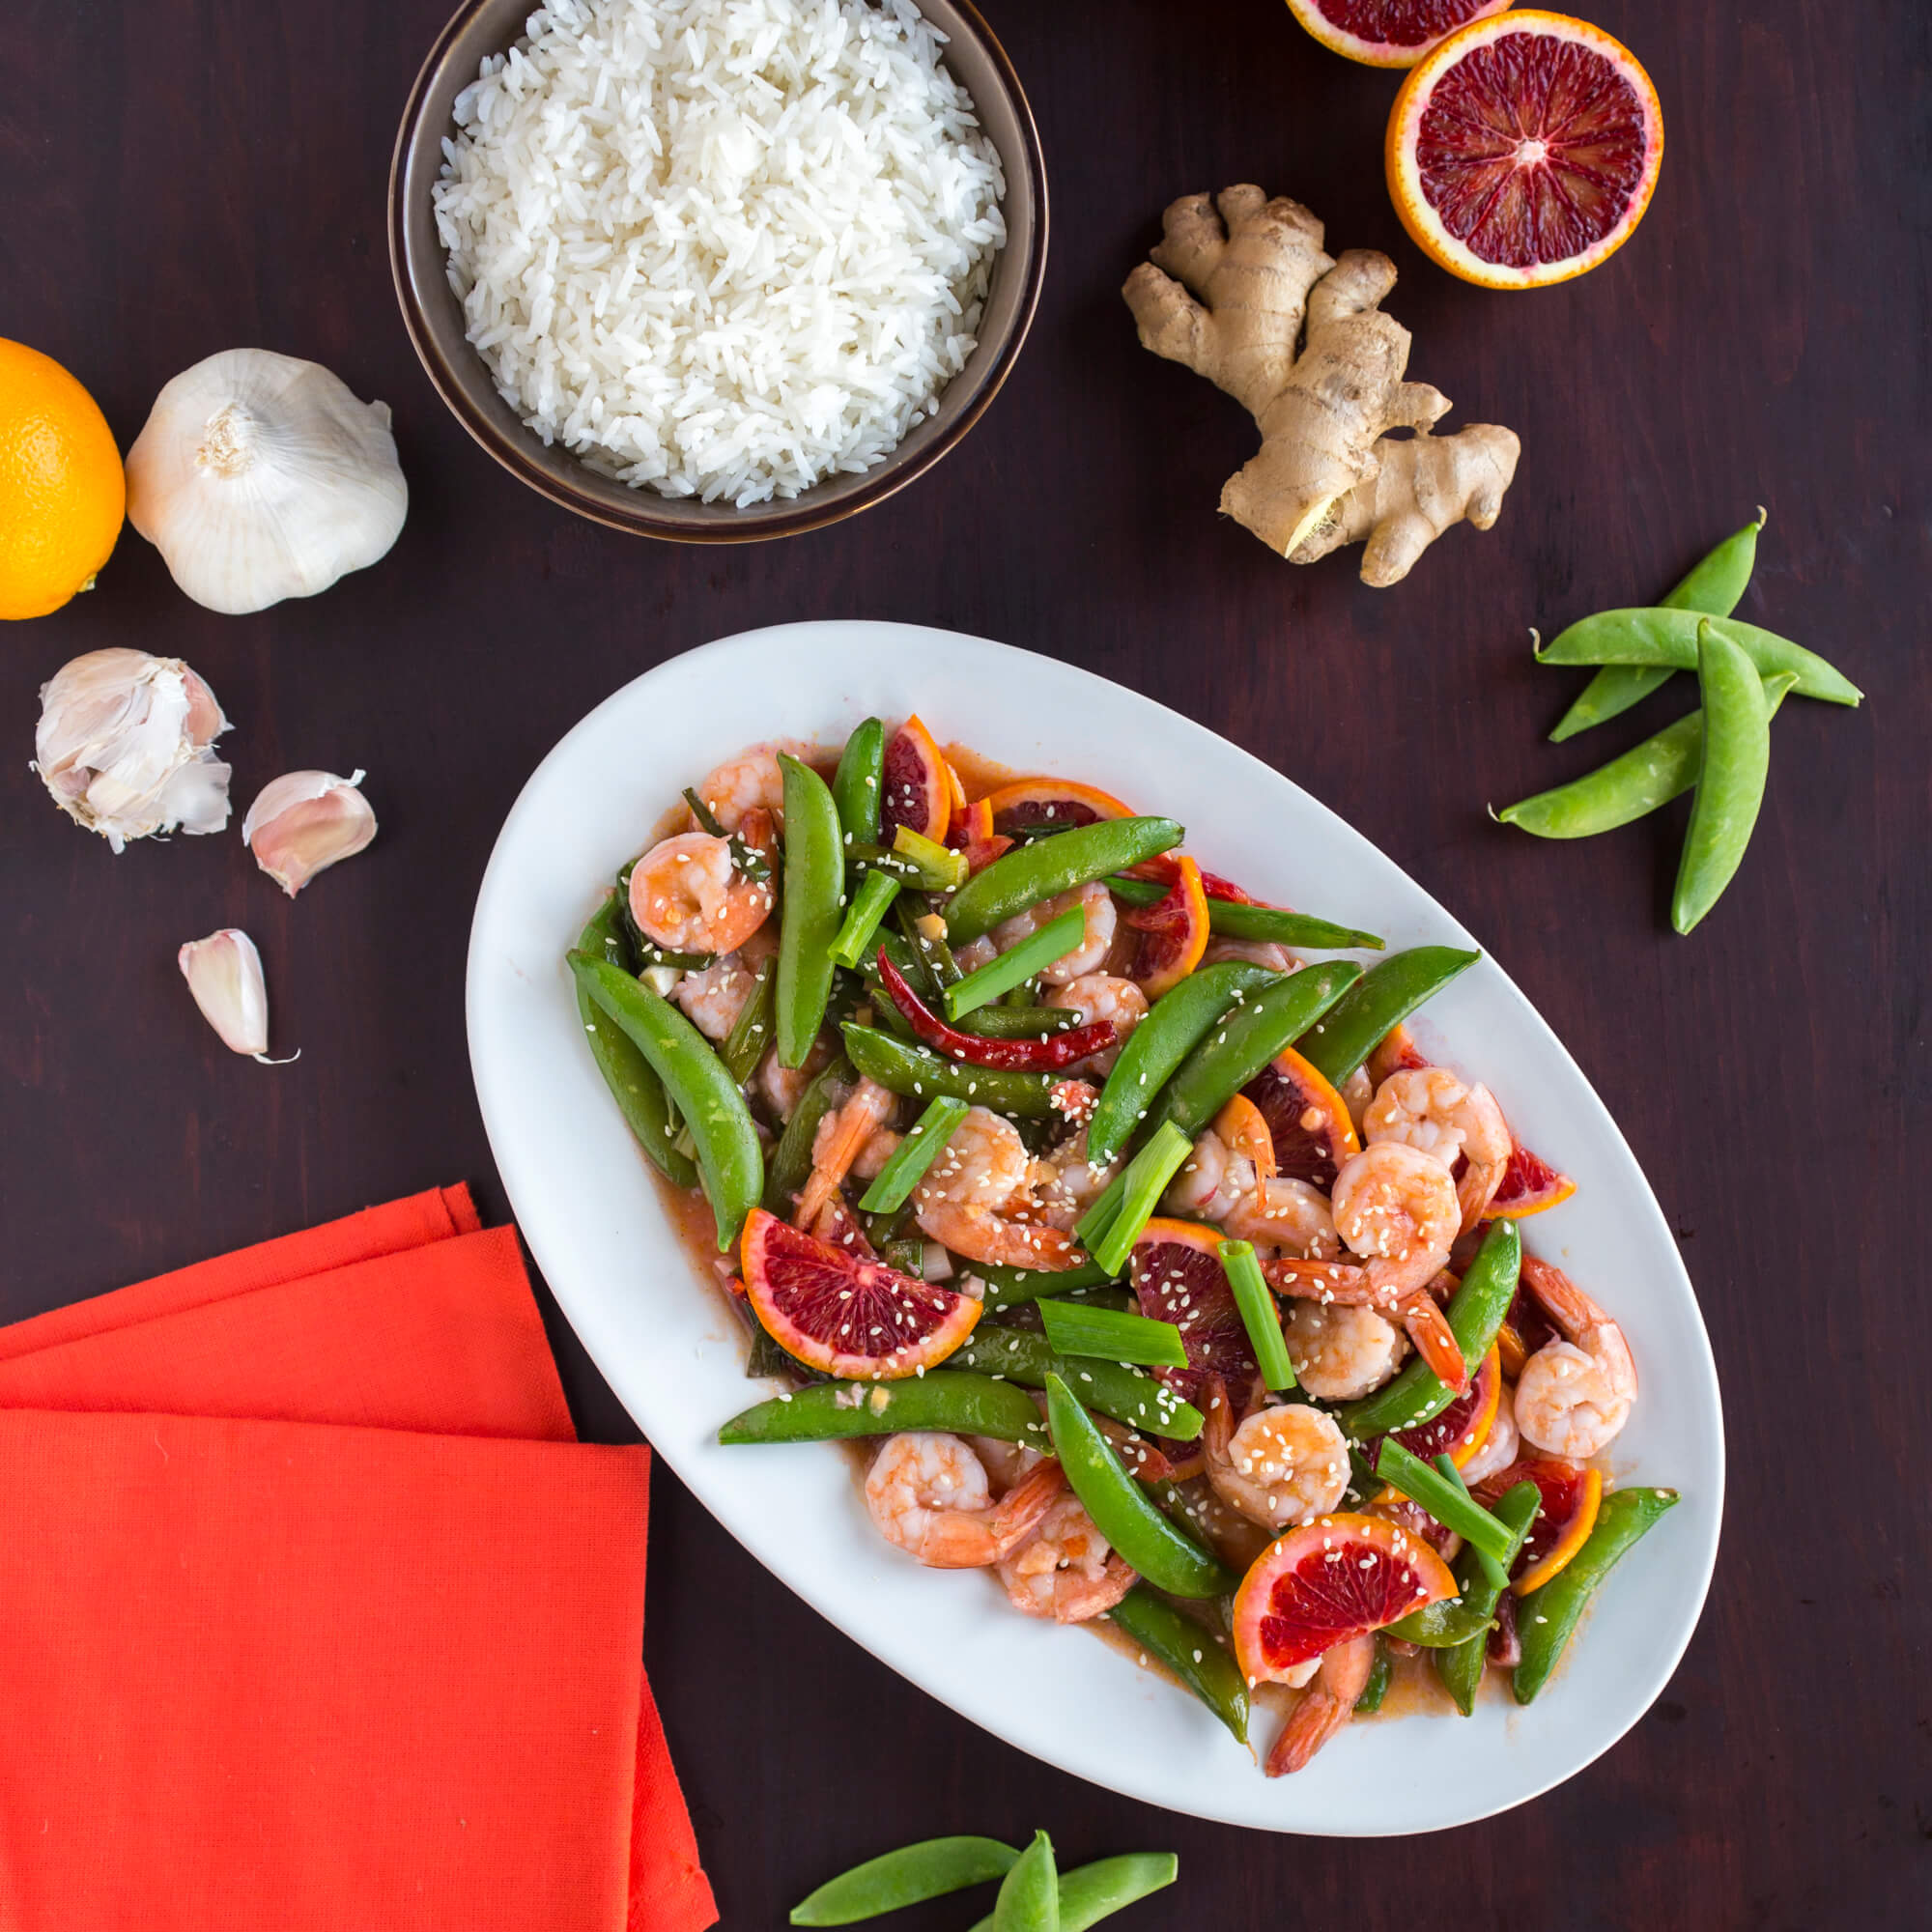 Shrimp with Blood Oranges, Snap Peas and Royal Jasmine Rice